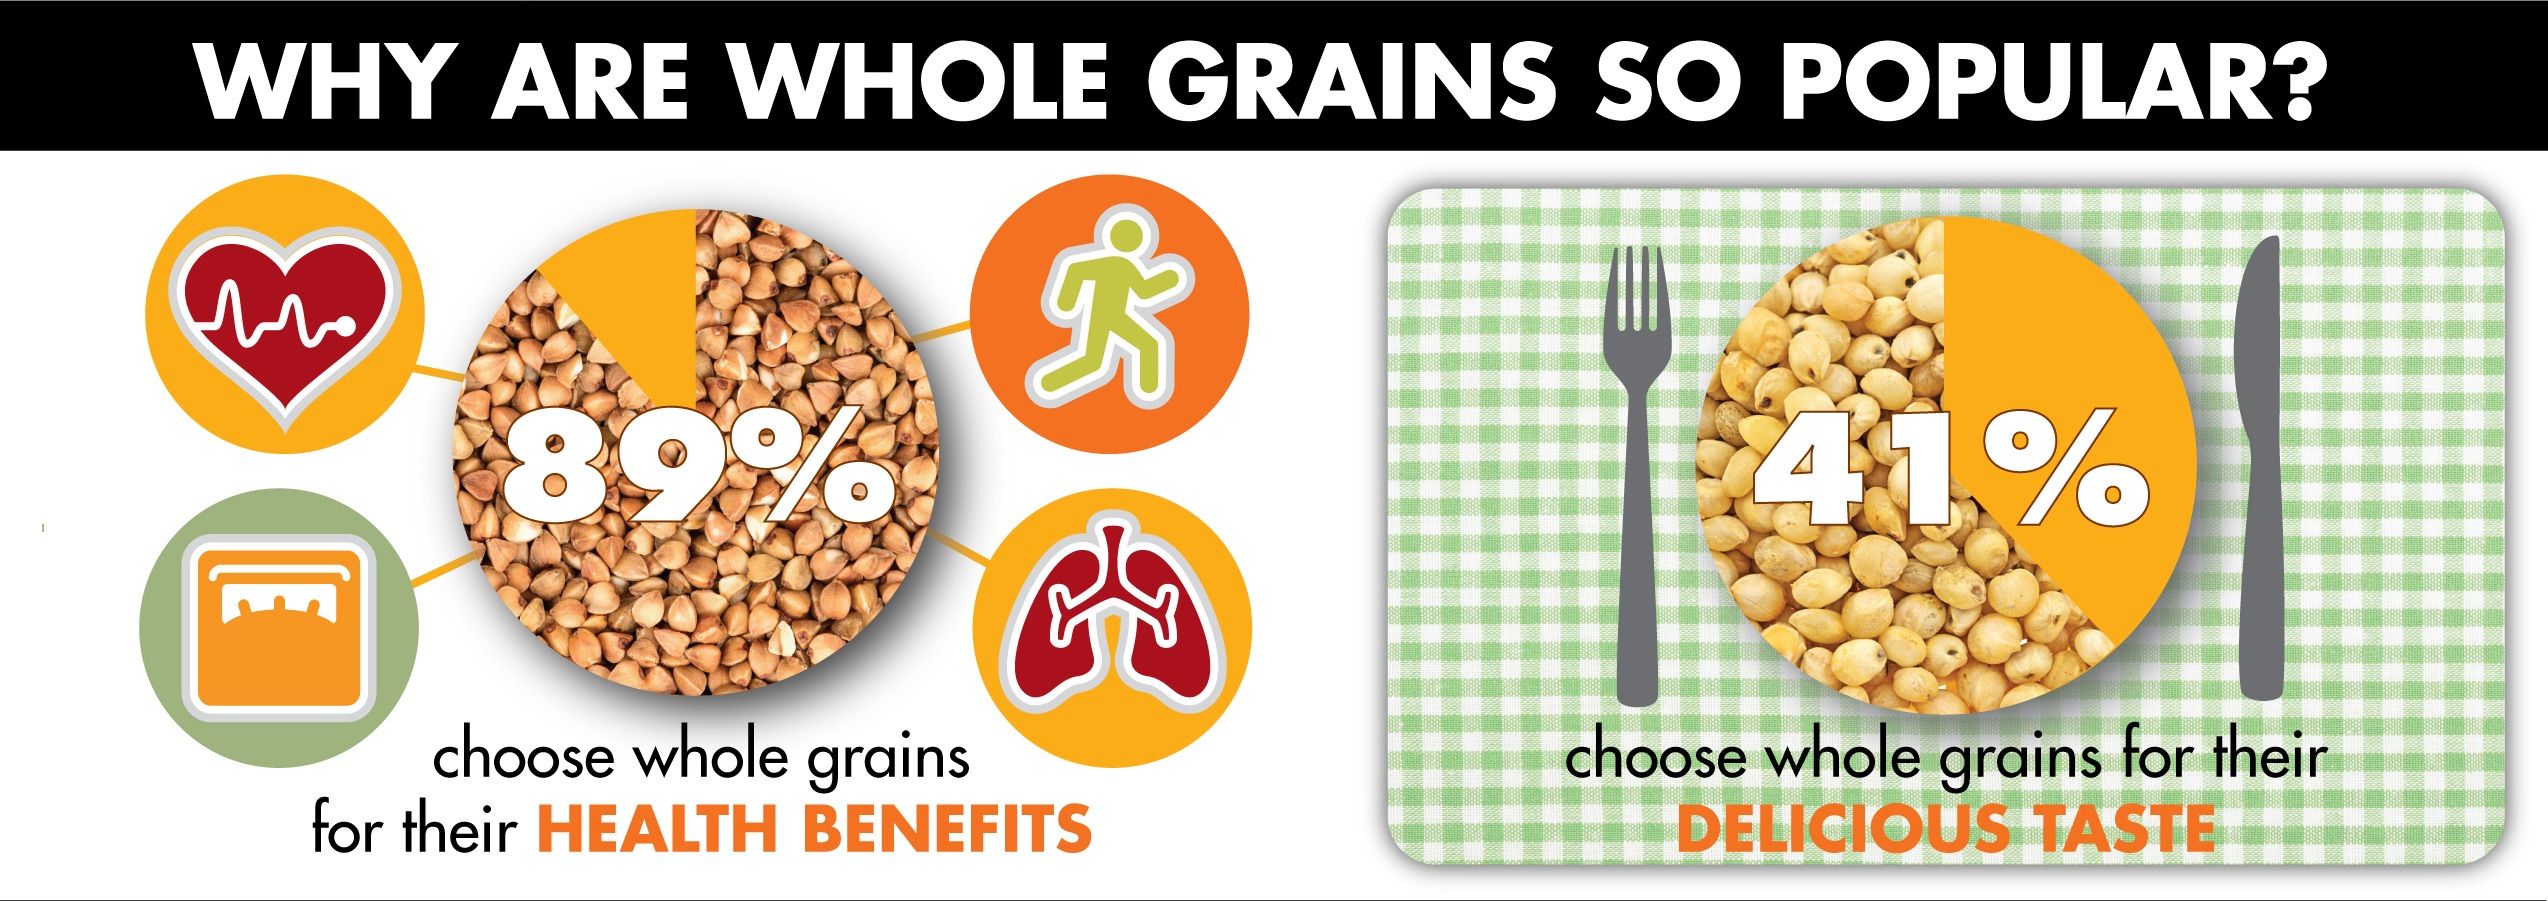 Infographic showing why consumers choose whole grains